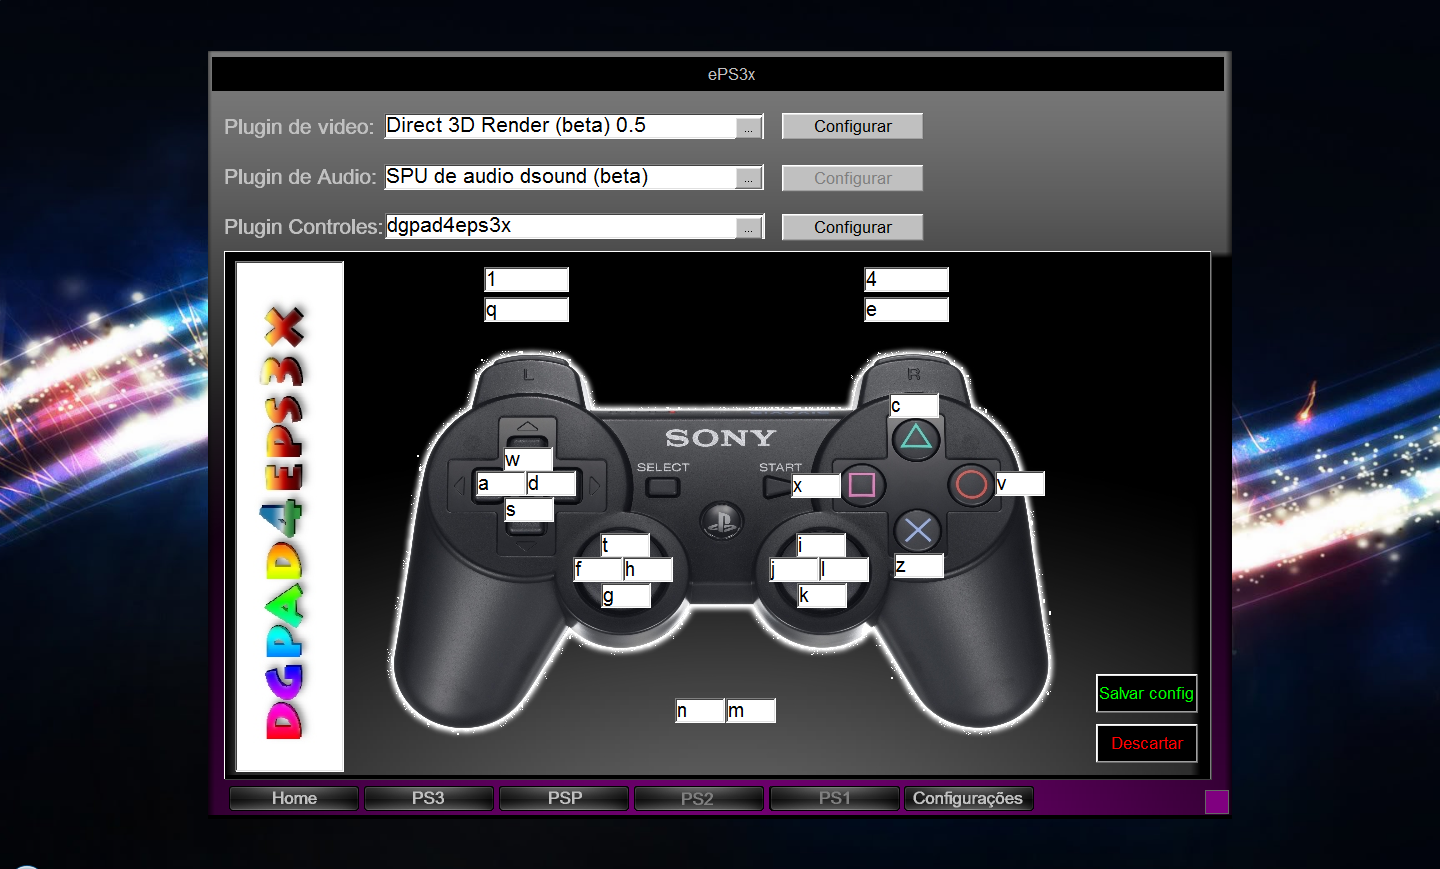 Playstation 3 Emulator Free Download Full Version For Pc